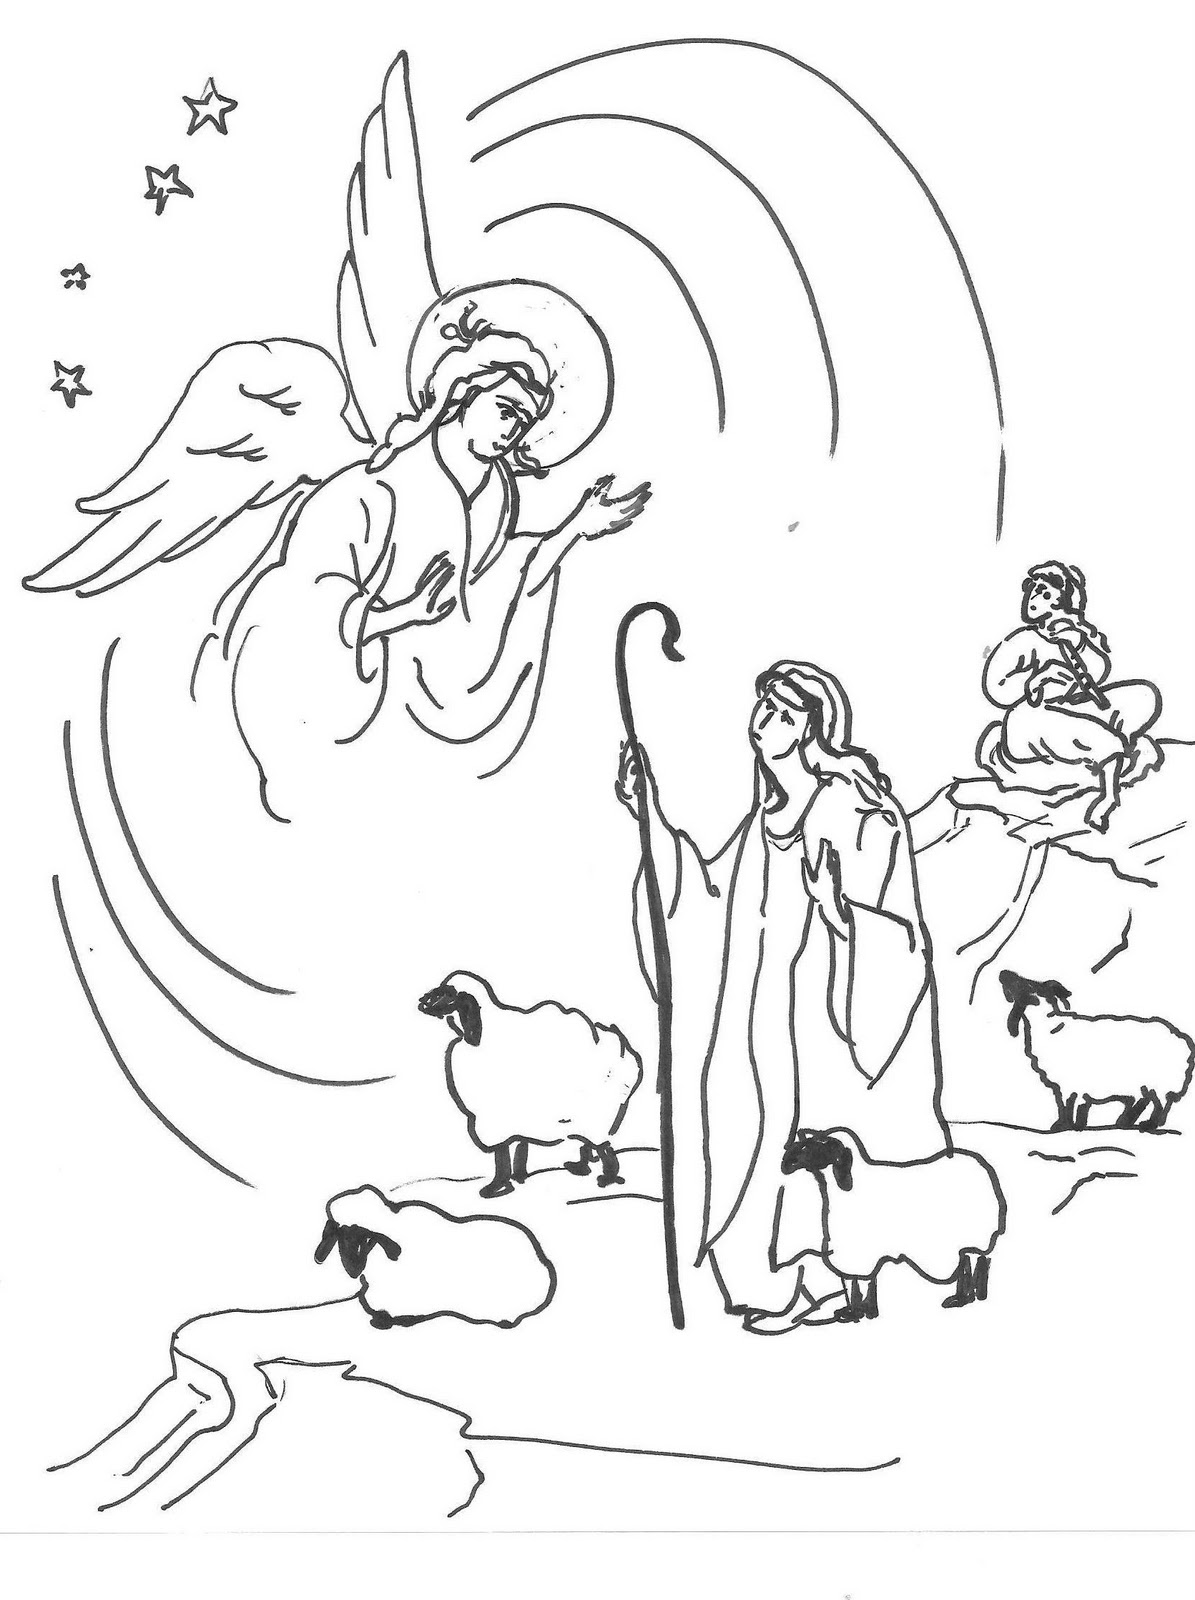 Goods Education: Christmas Coloring & Symbolism